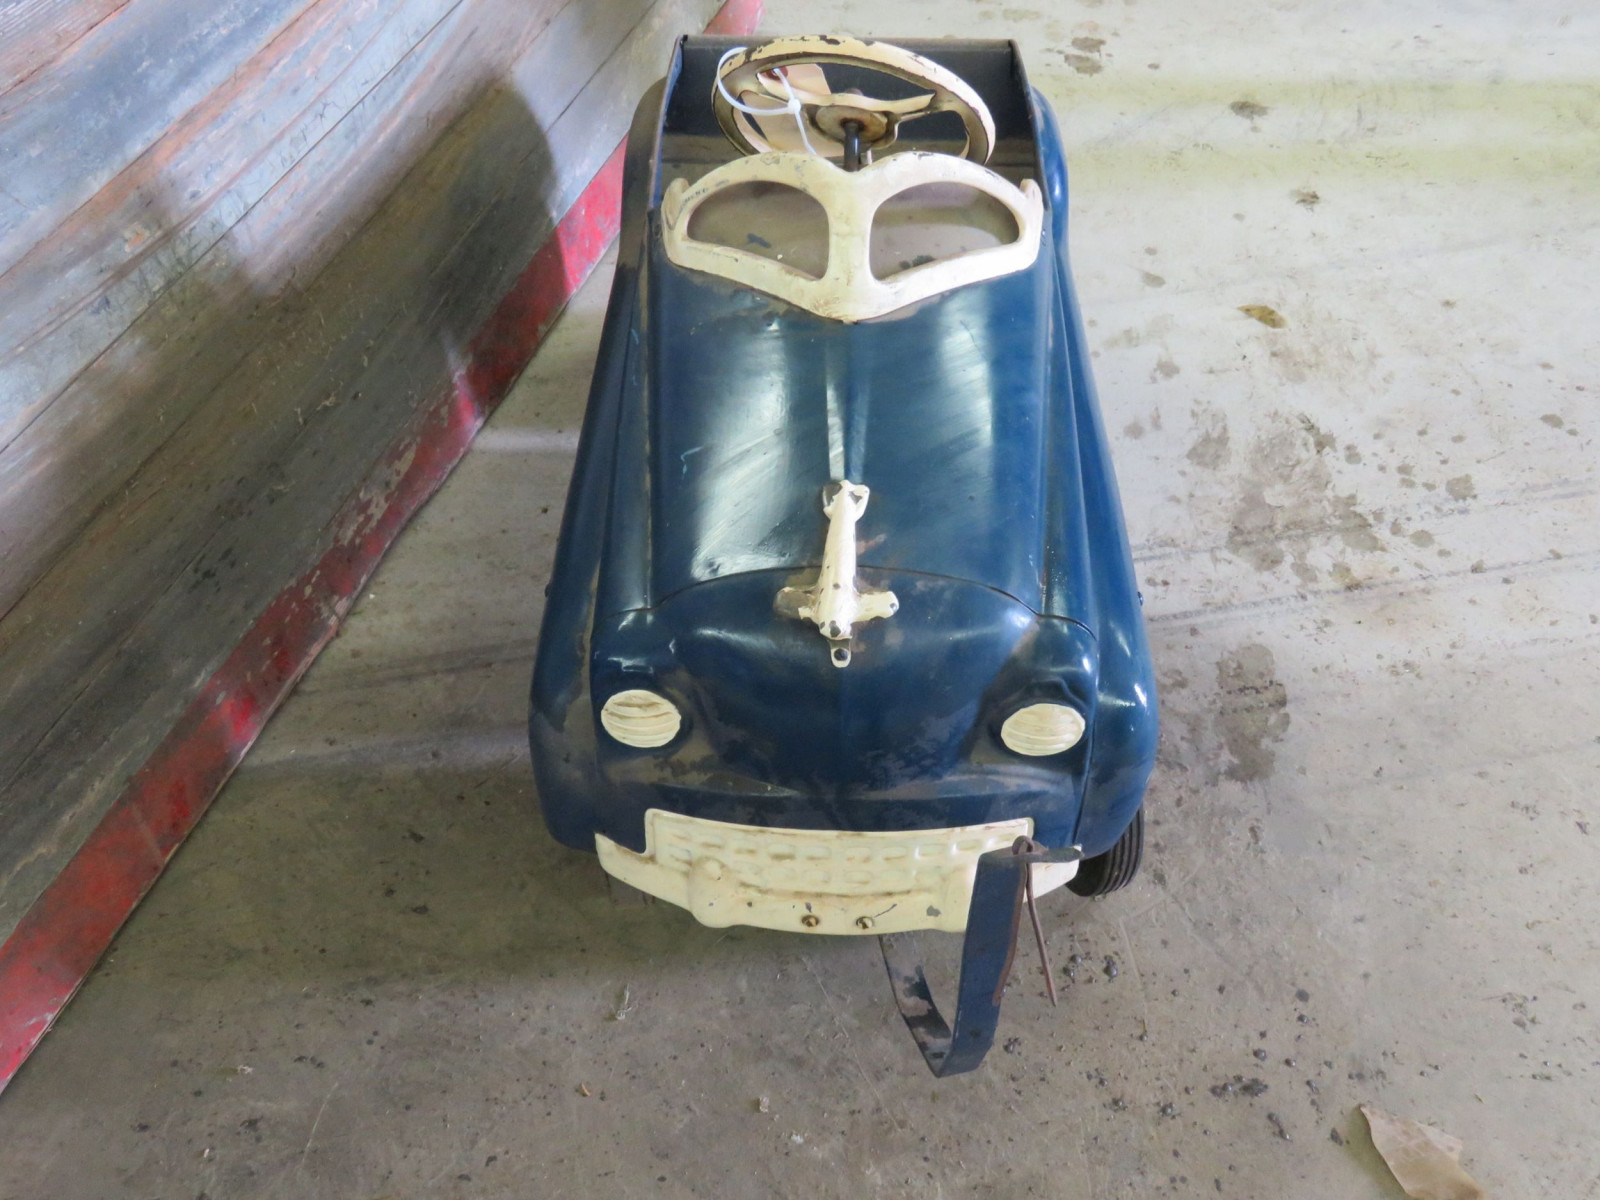 Vintage Murray Pedal Car - Image 2